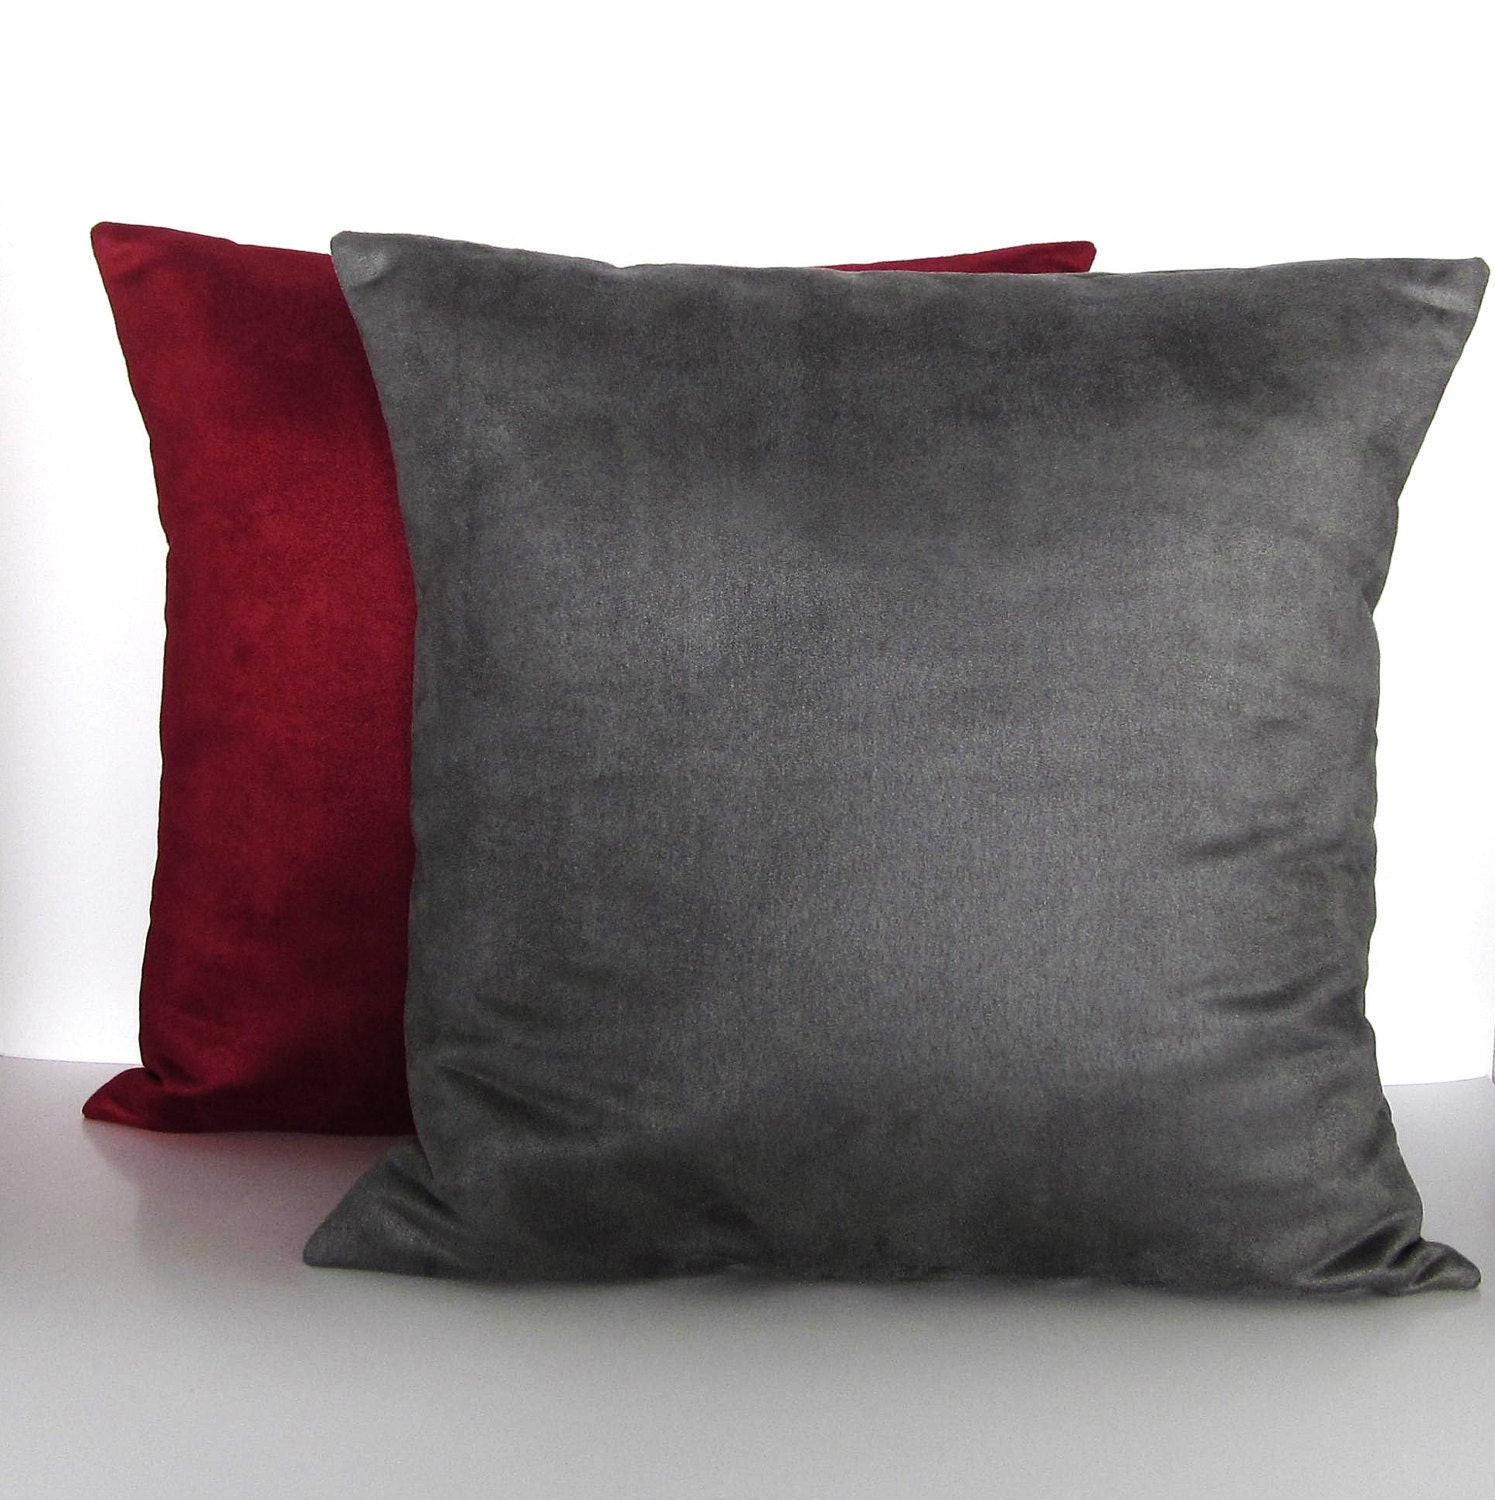 Gray Burgundy Suede Pillow Covers Decorative Accent Throw